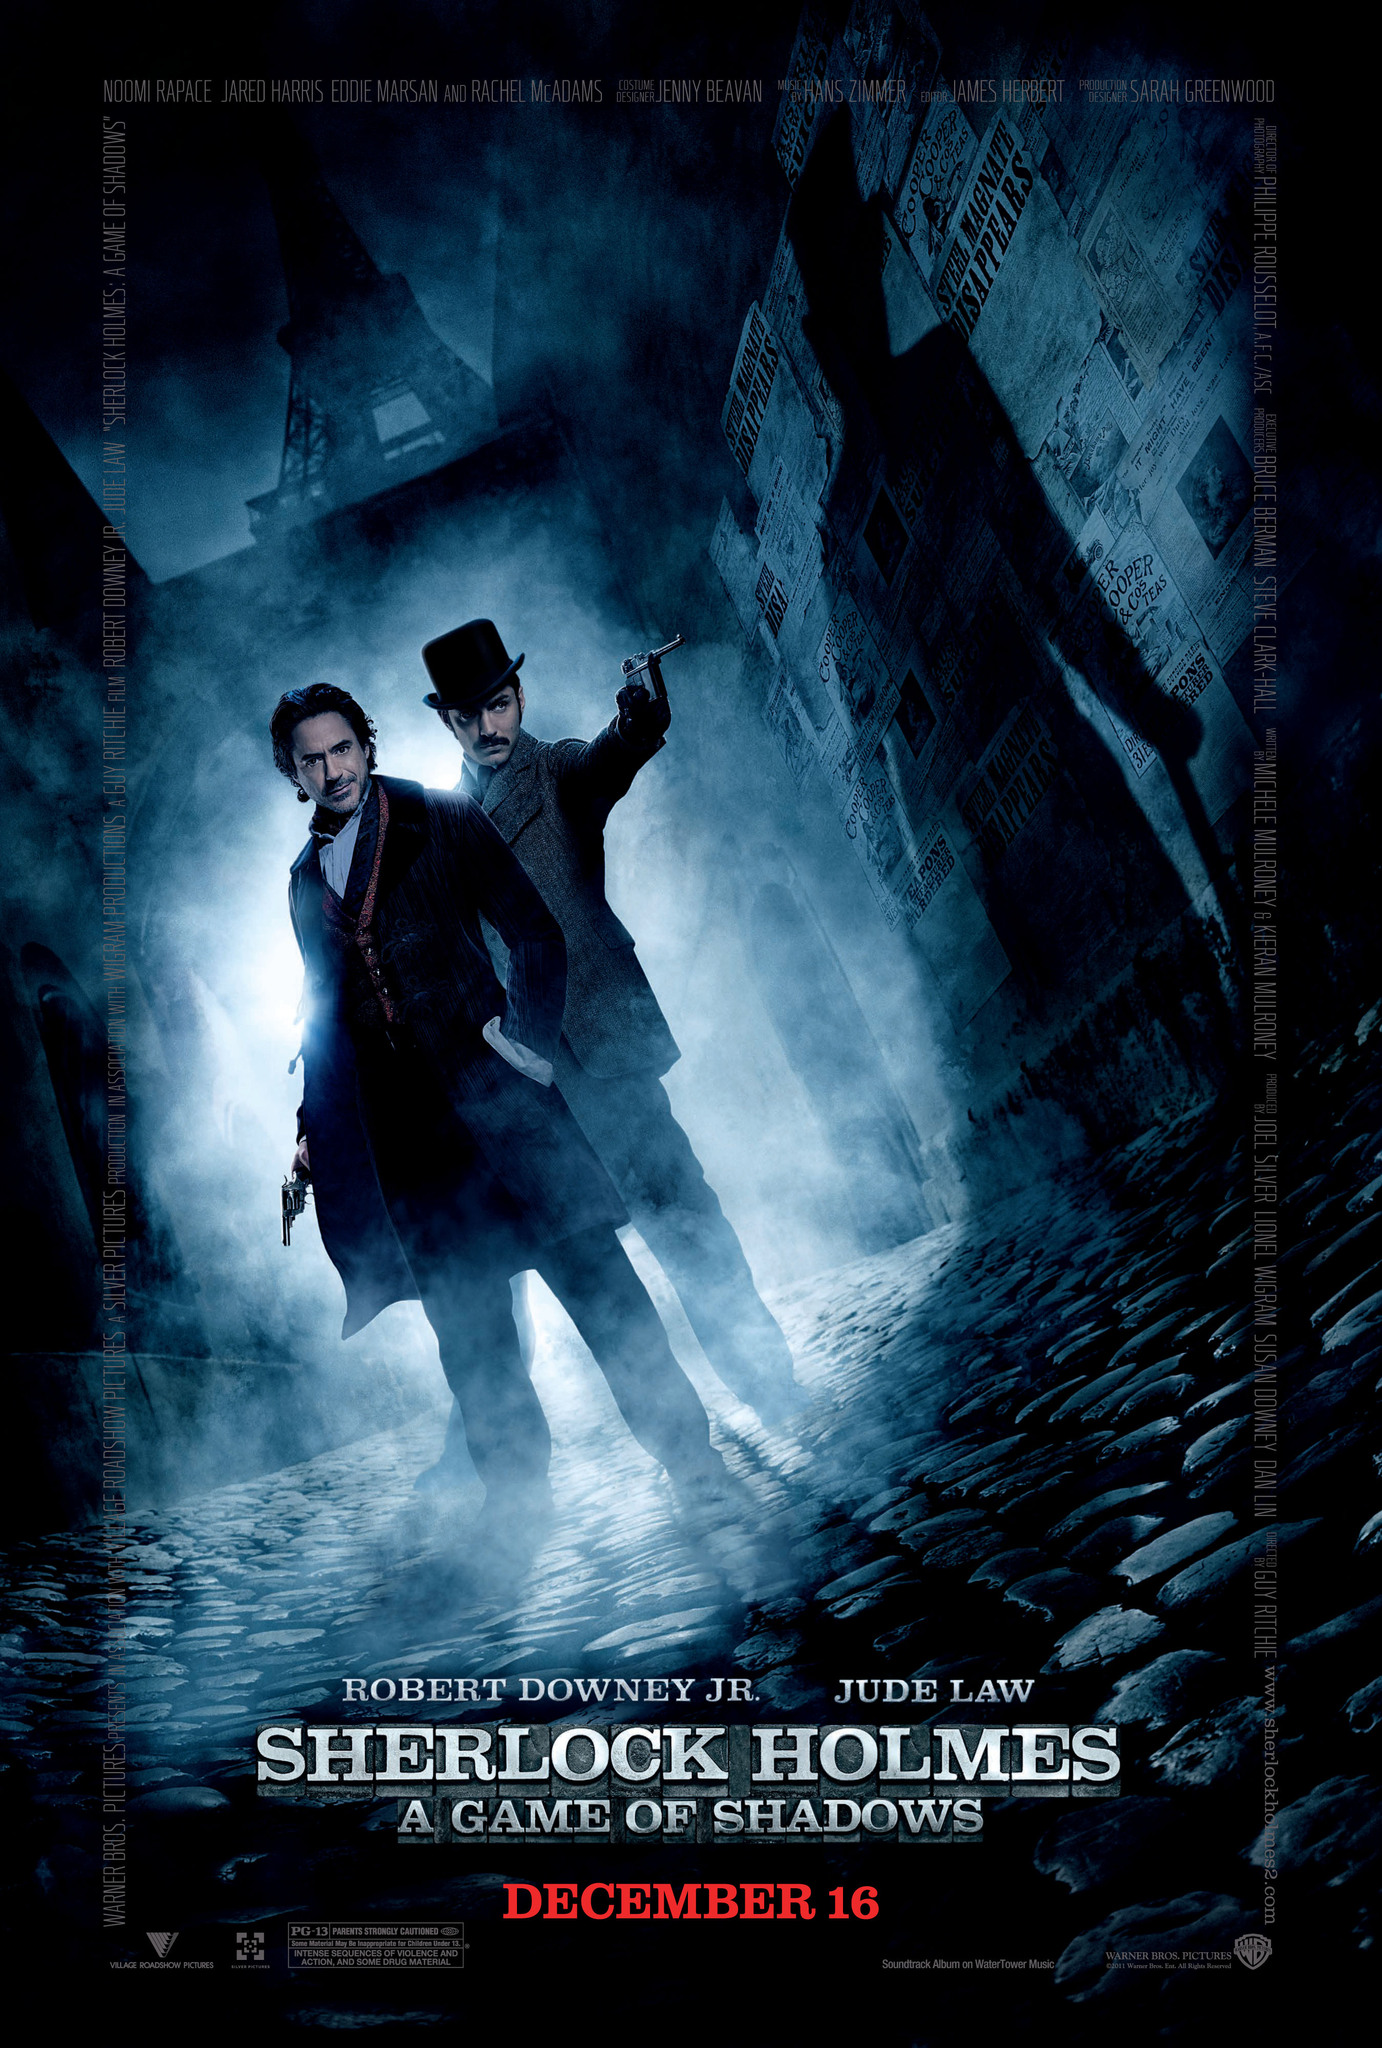 Sherlock.Holmes.A.Game.of.Shadows.2011.MULTi.COMPLETE.UHD.BLURAY-PRECELL